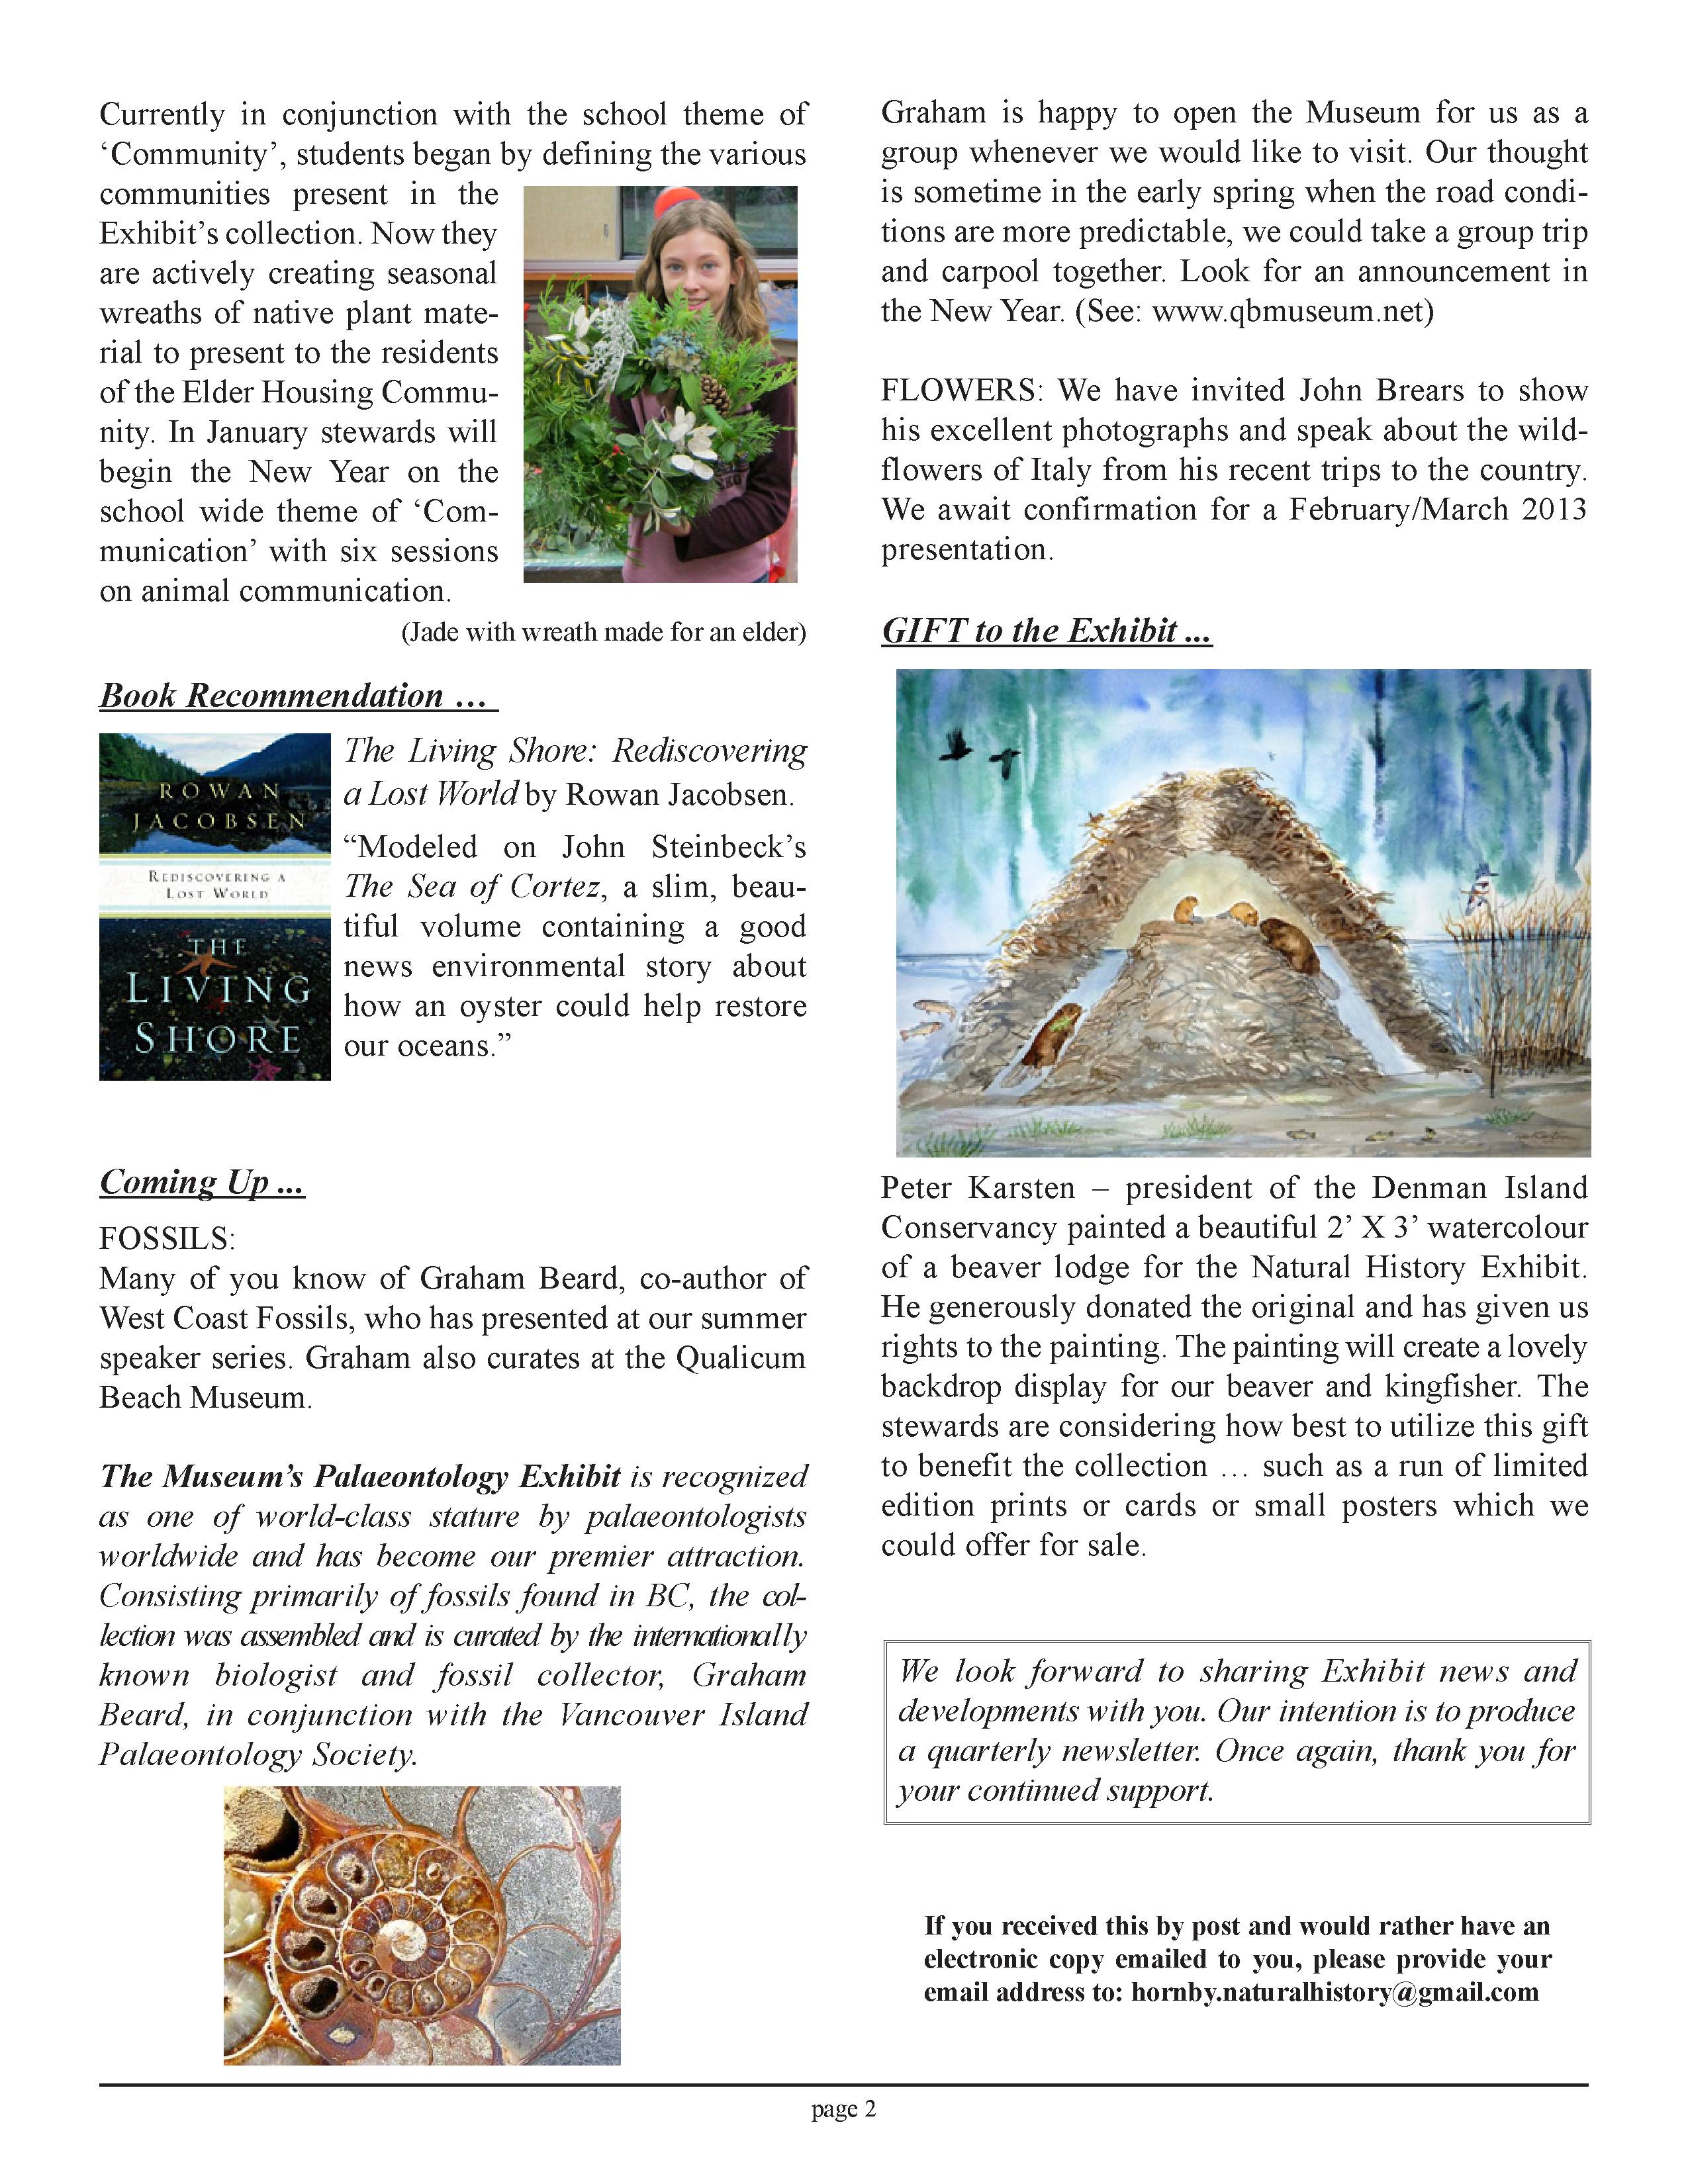 2012 News | Hornby Island Natural History Centre